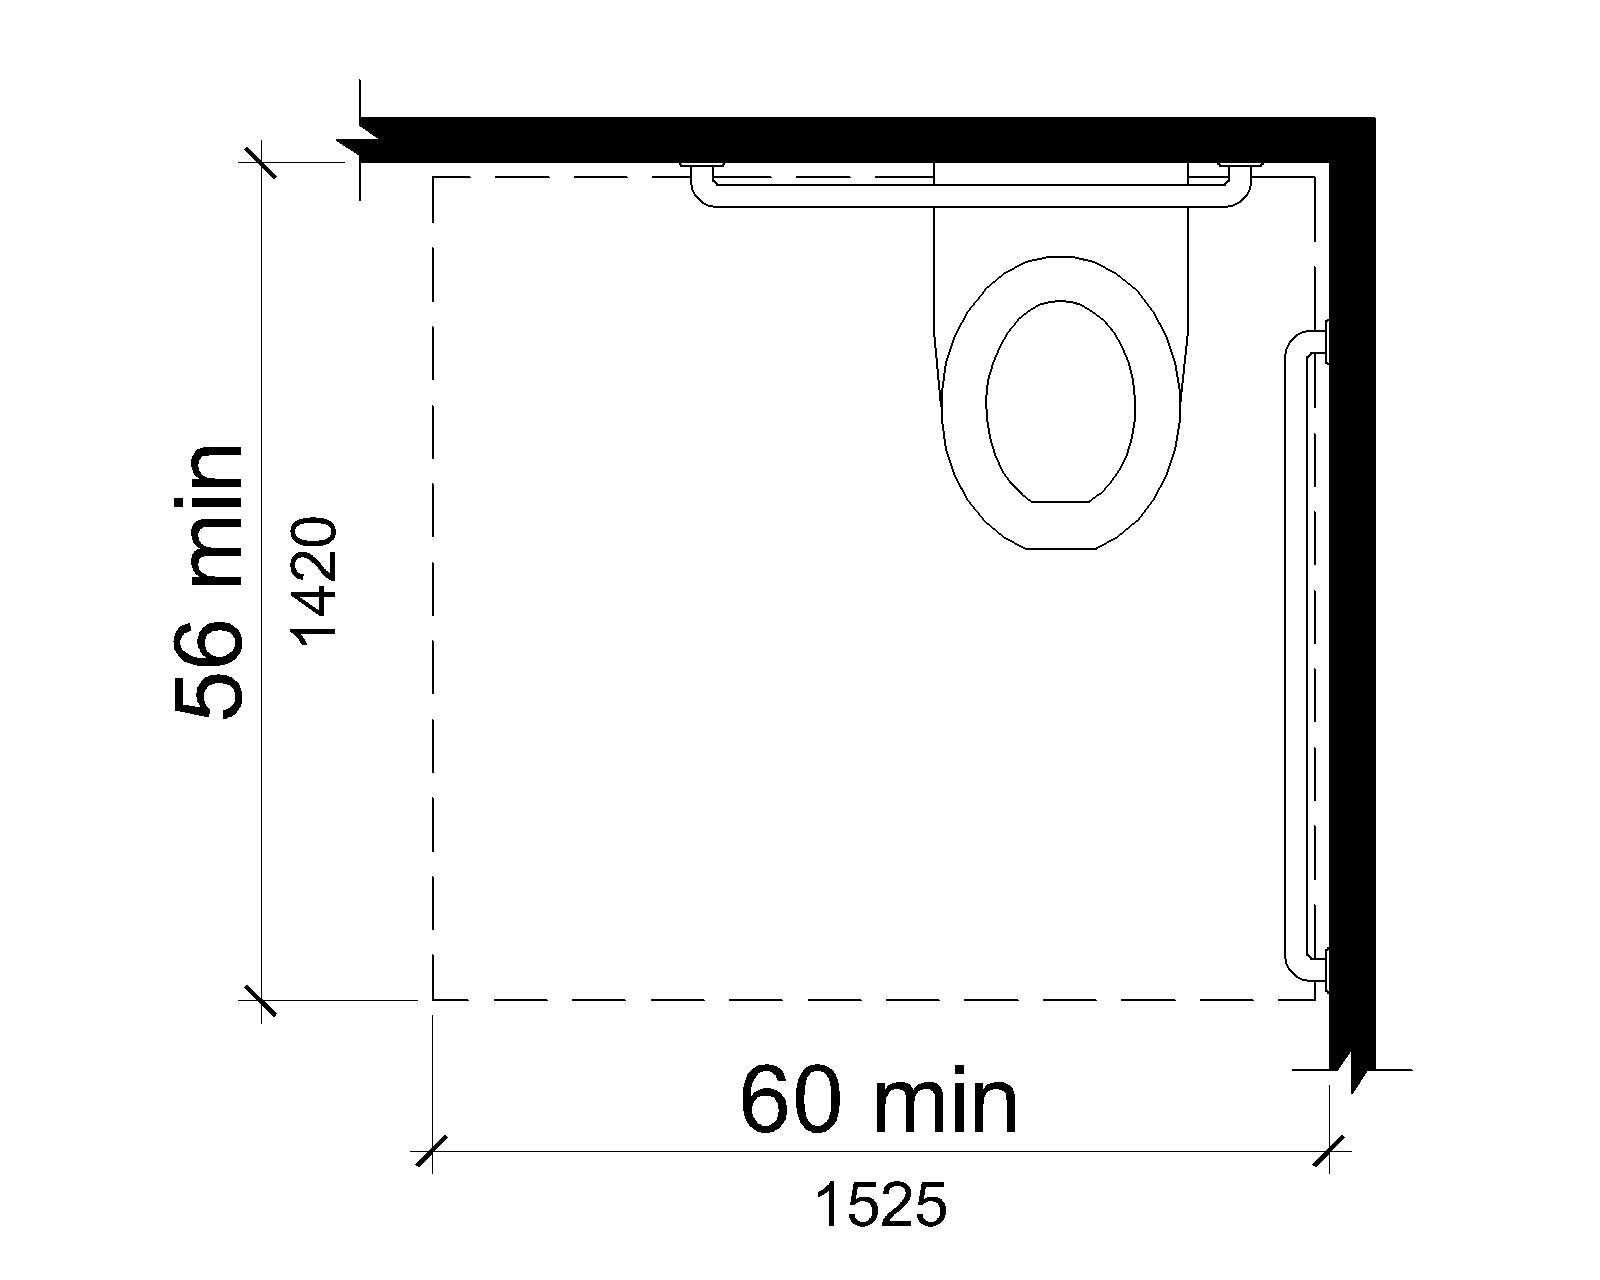 Figure V604.3.1 Clearance Around Water Closet. The clearance around a water closet is shown in plan view to be 60 inches (1525 mm) wide minimum and 56 inches (1420 mm) deep minimum.